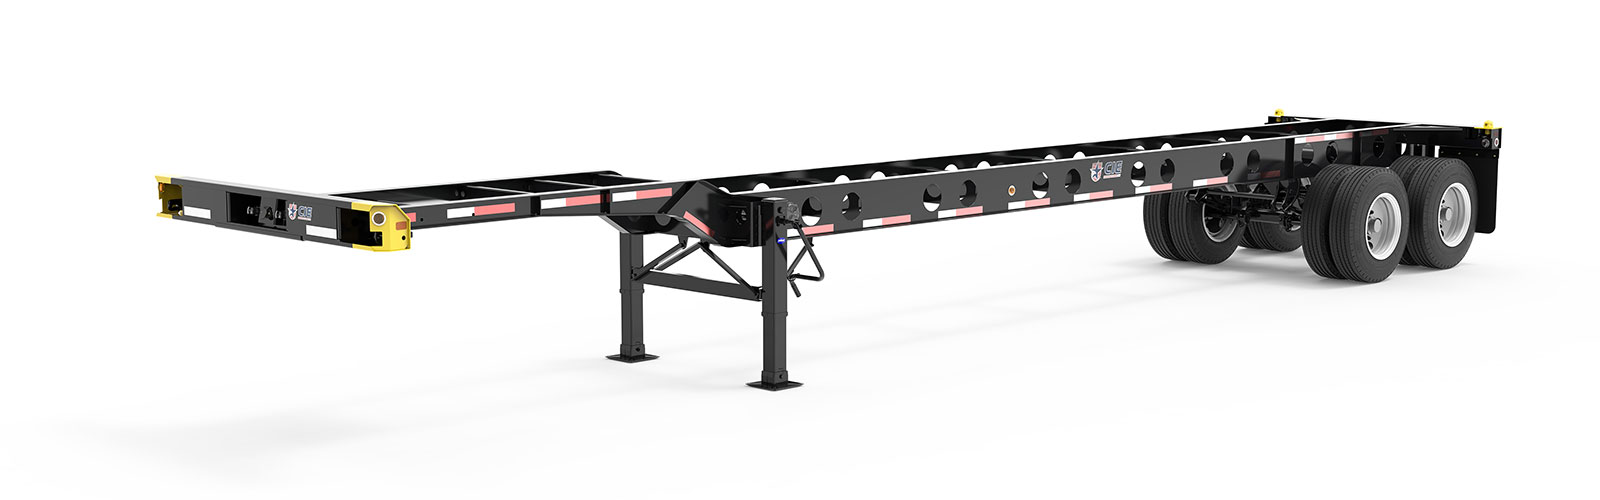 40' Gooseneck Tandem Lightweight Container Chassis Literature Angle View Final